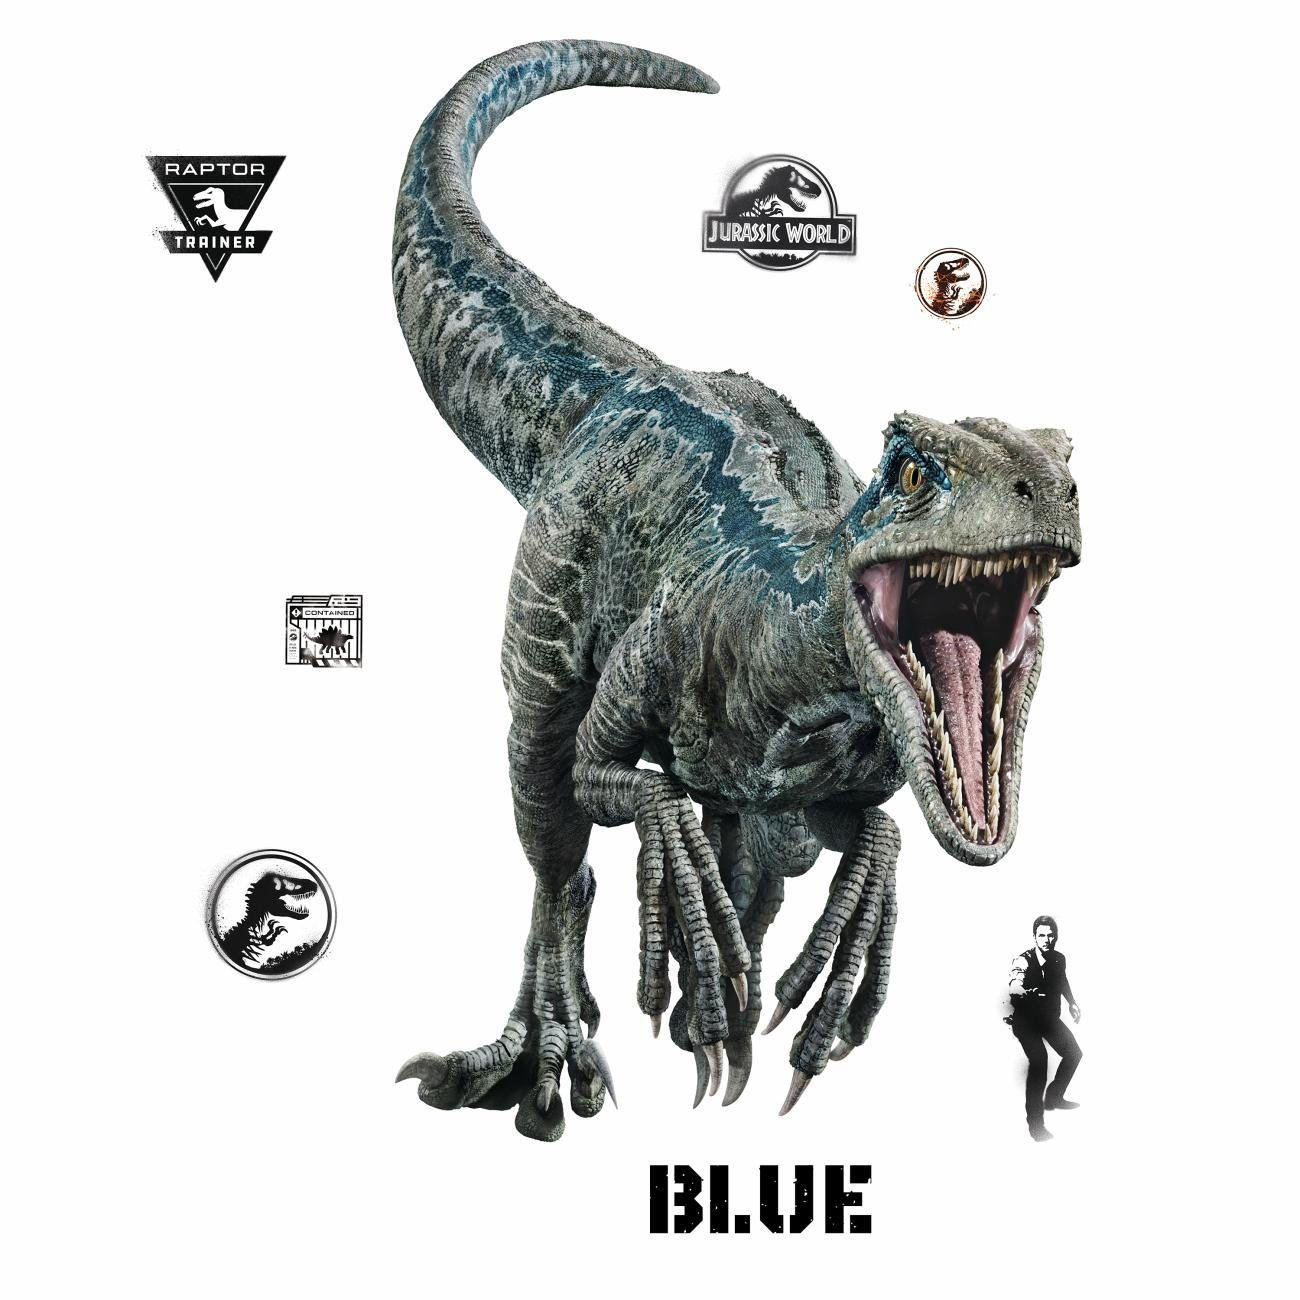 RoomMates Jurassic World: Fallen Kingdom Velociraptor Giant Peel and Stick Wall Decals, Blue, Black - RMK3799GM by RoomMates